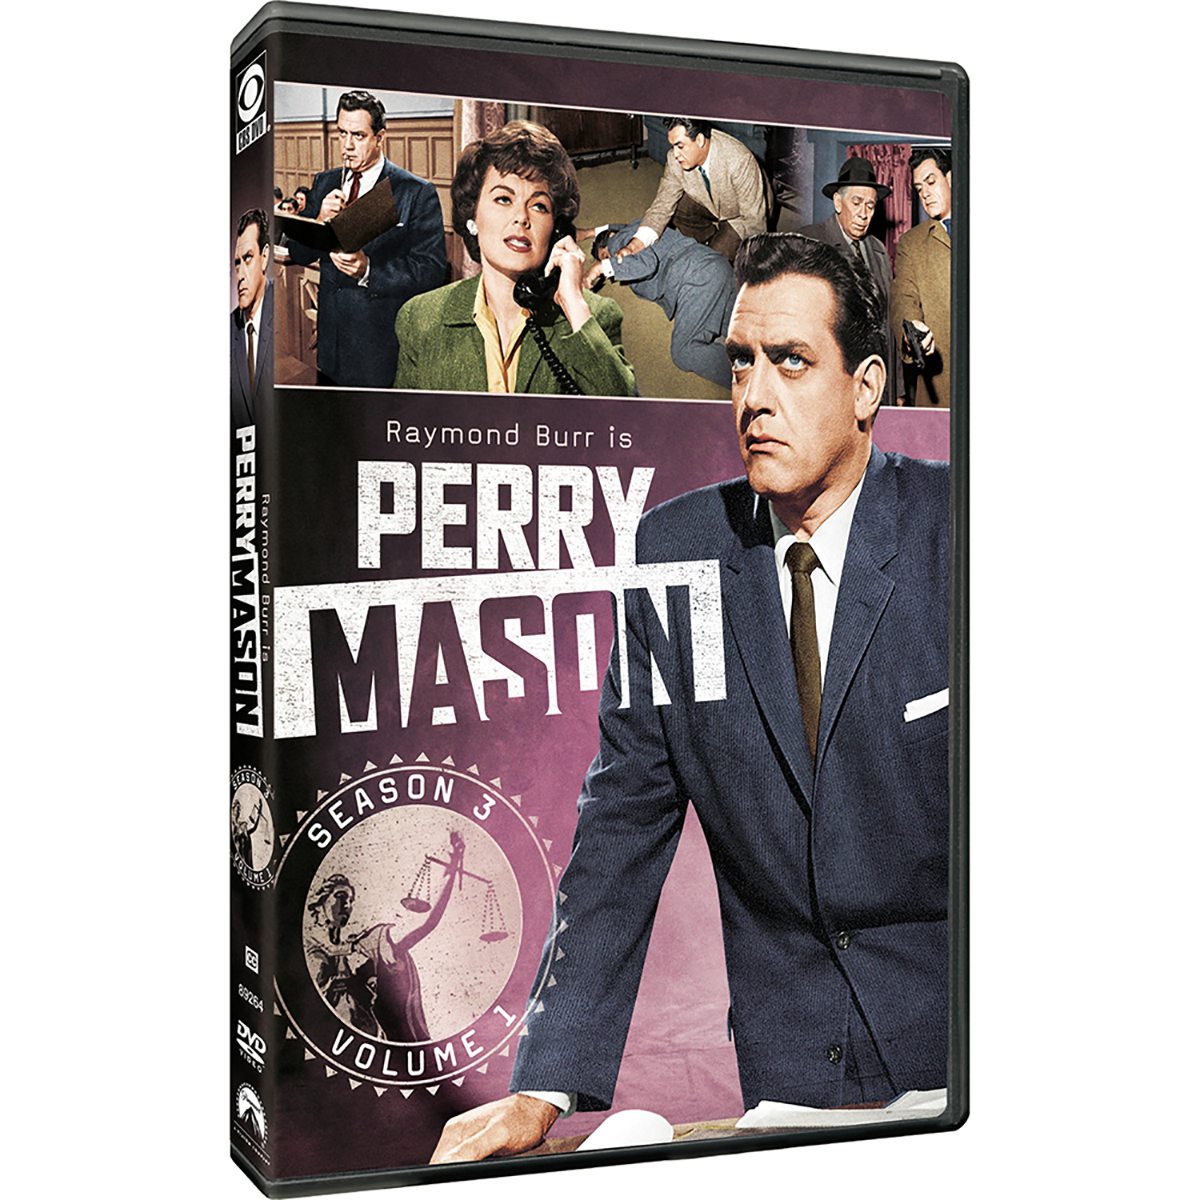 Perry Mason: Season 3 - Volume 1 DVD